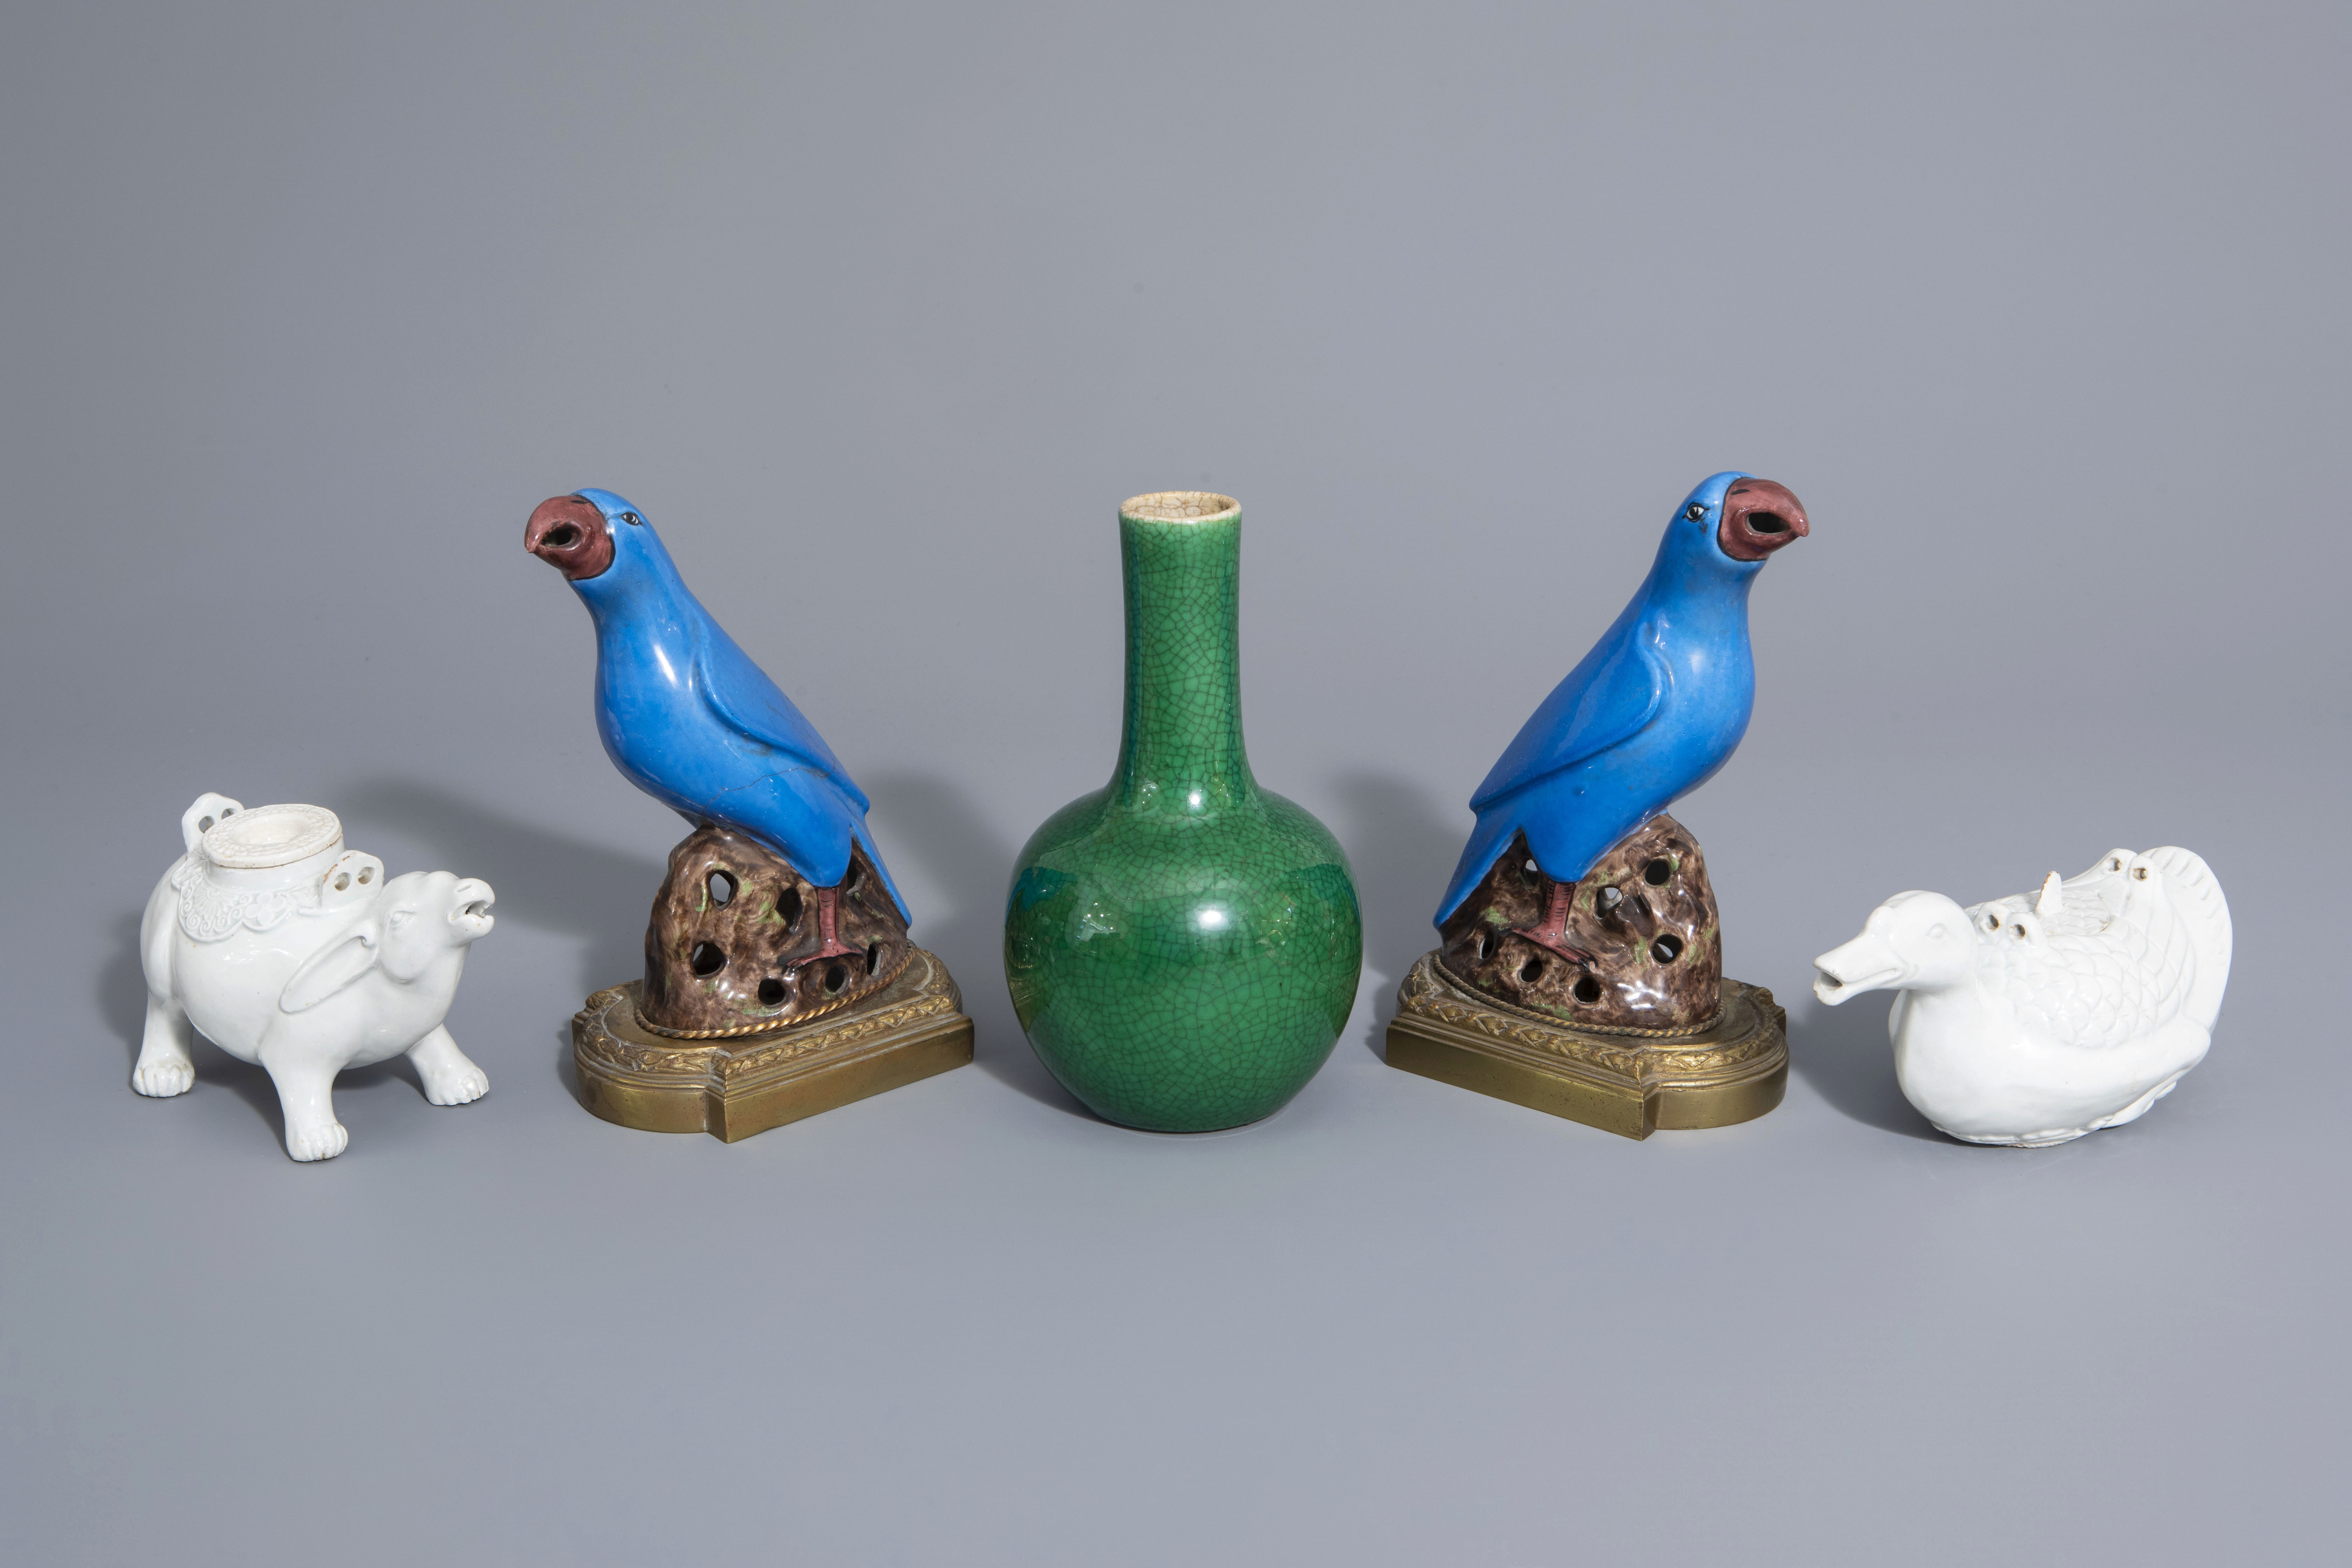 A Chinese monochrome green vase, 2 blanc de Chine teapots & a pair of polychrome birds, 19th/20th C